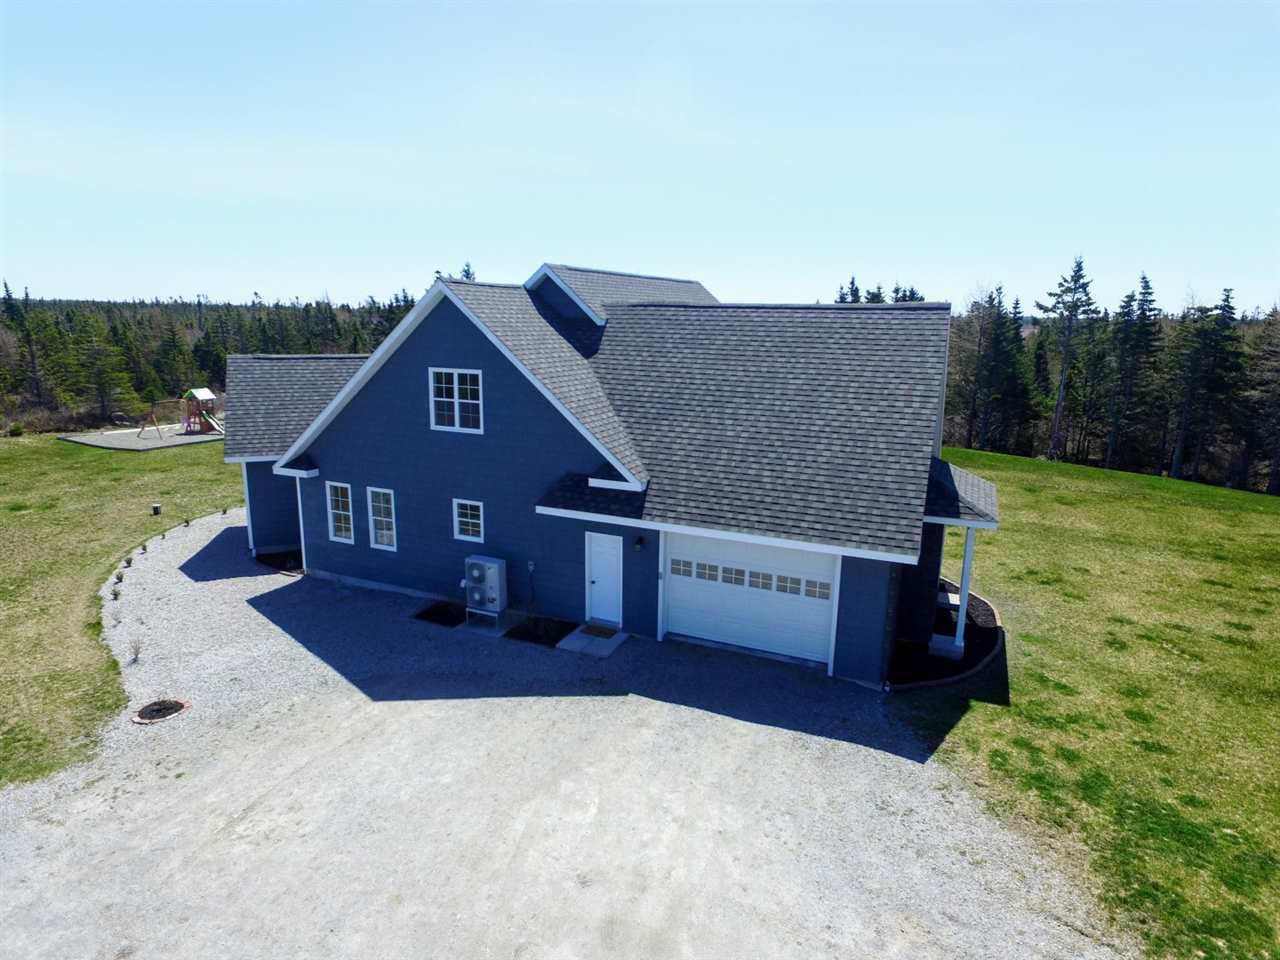 Photo 6: Photos: 1902 Stoney Island Road in Centreville: 407-Shelburne County Residential for sale (South Shore)  : MLS®# 201926888